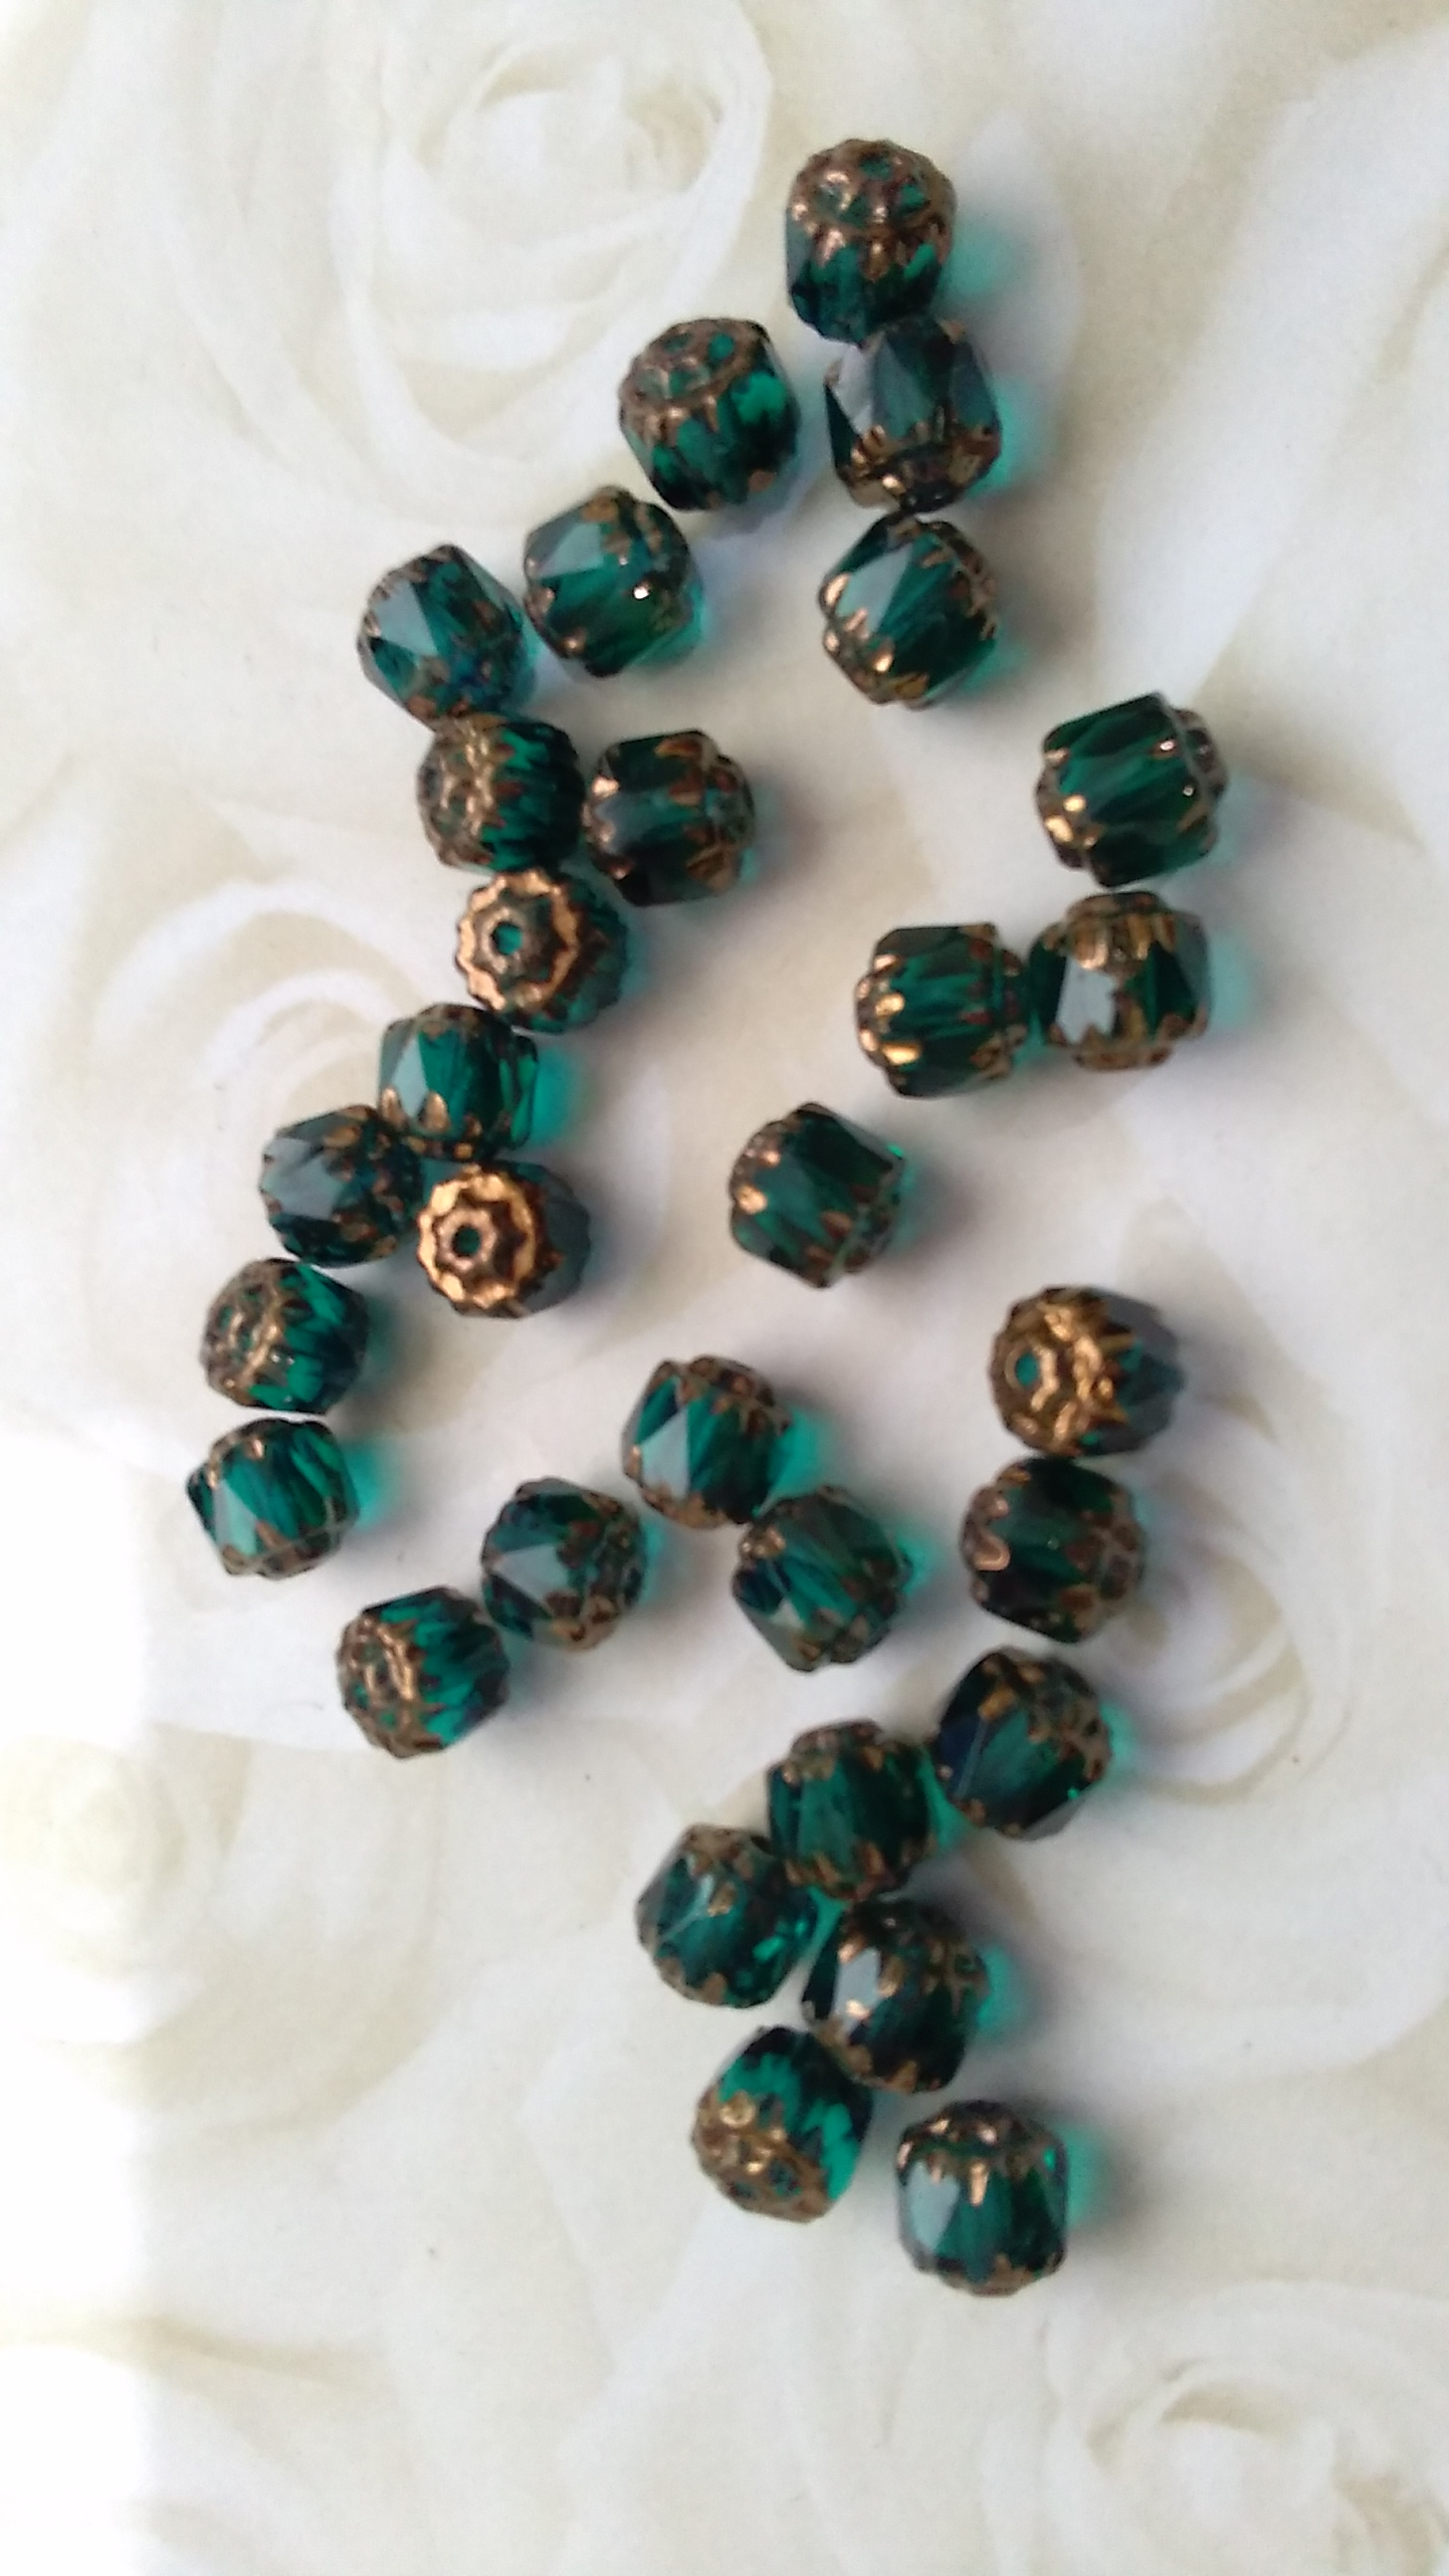 Czech 6mm Cathedral Cut Emerald Beads